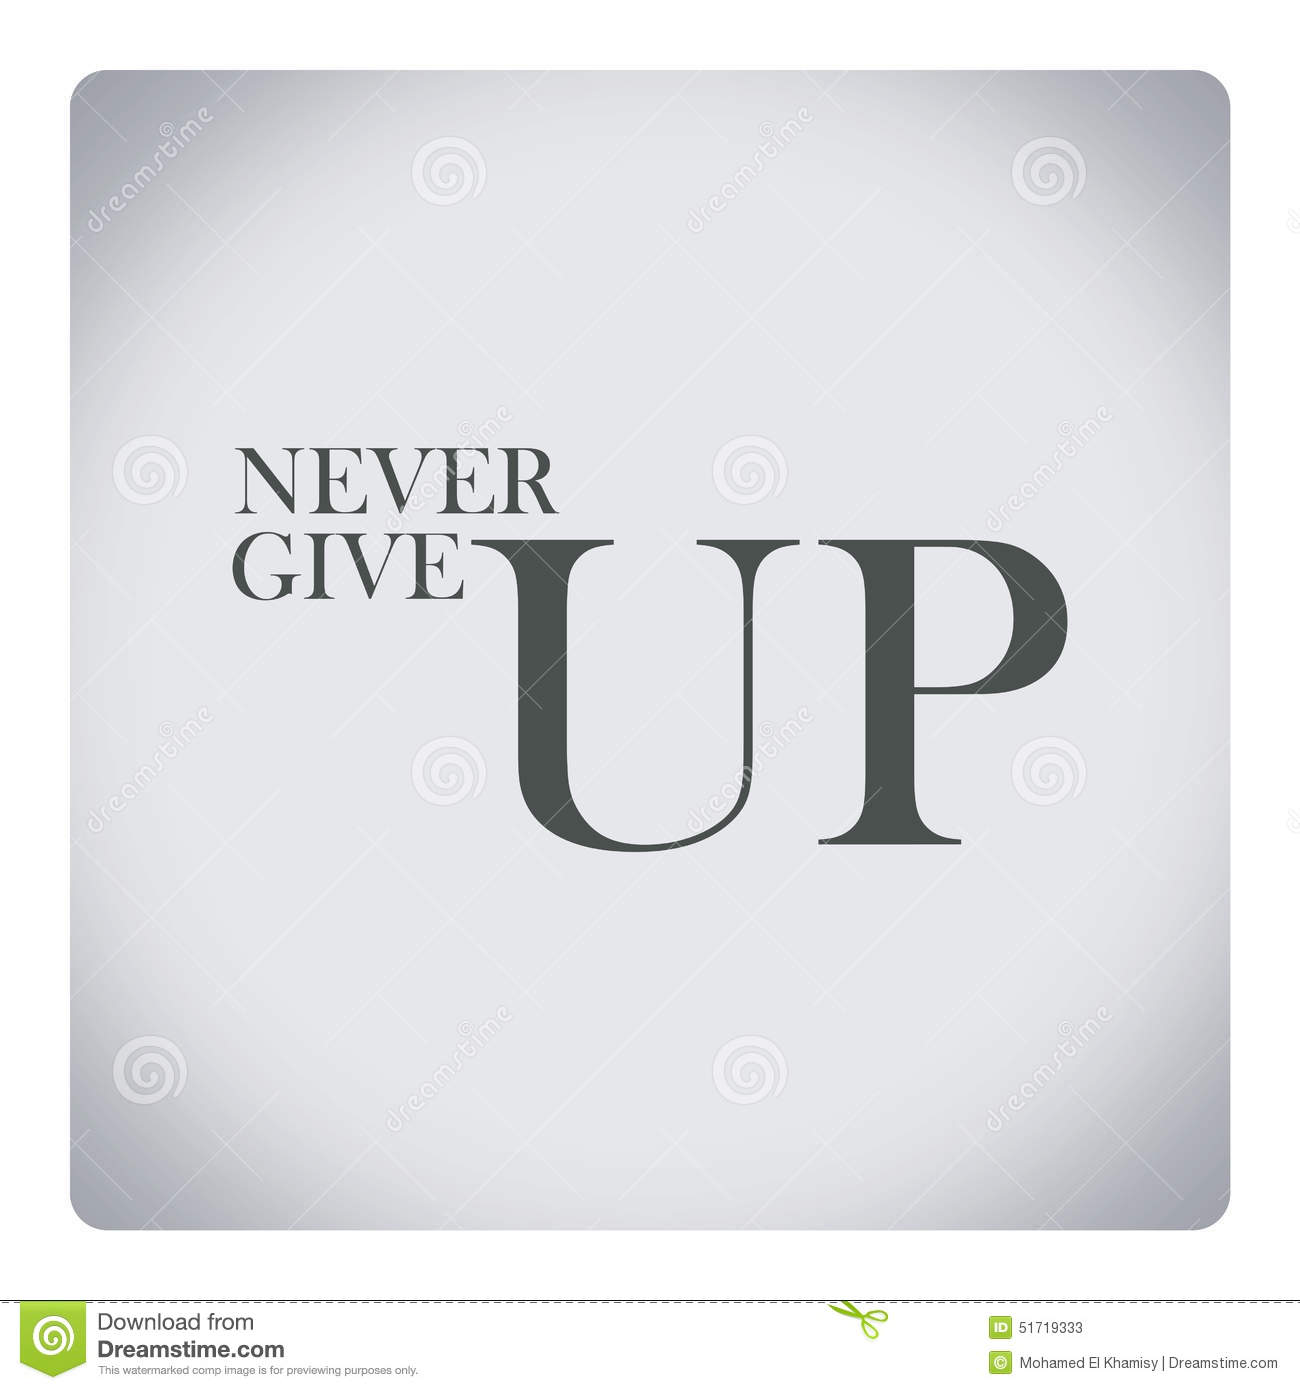 Never Give Up On Life Quotes Never Give Upquote About Life Stock Illustration  Illustration